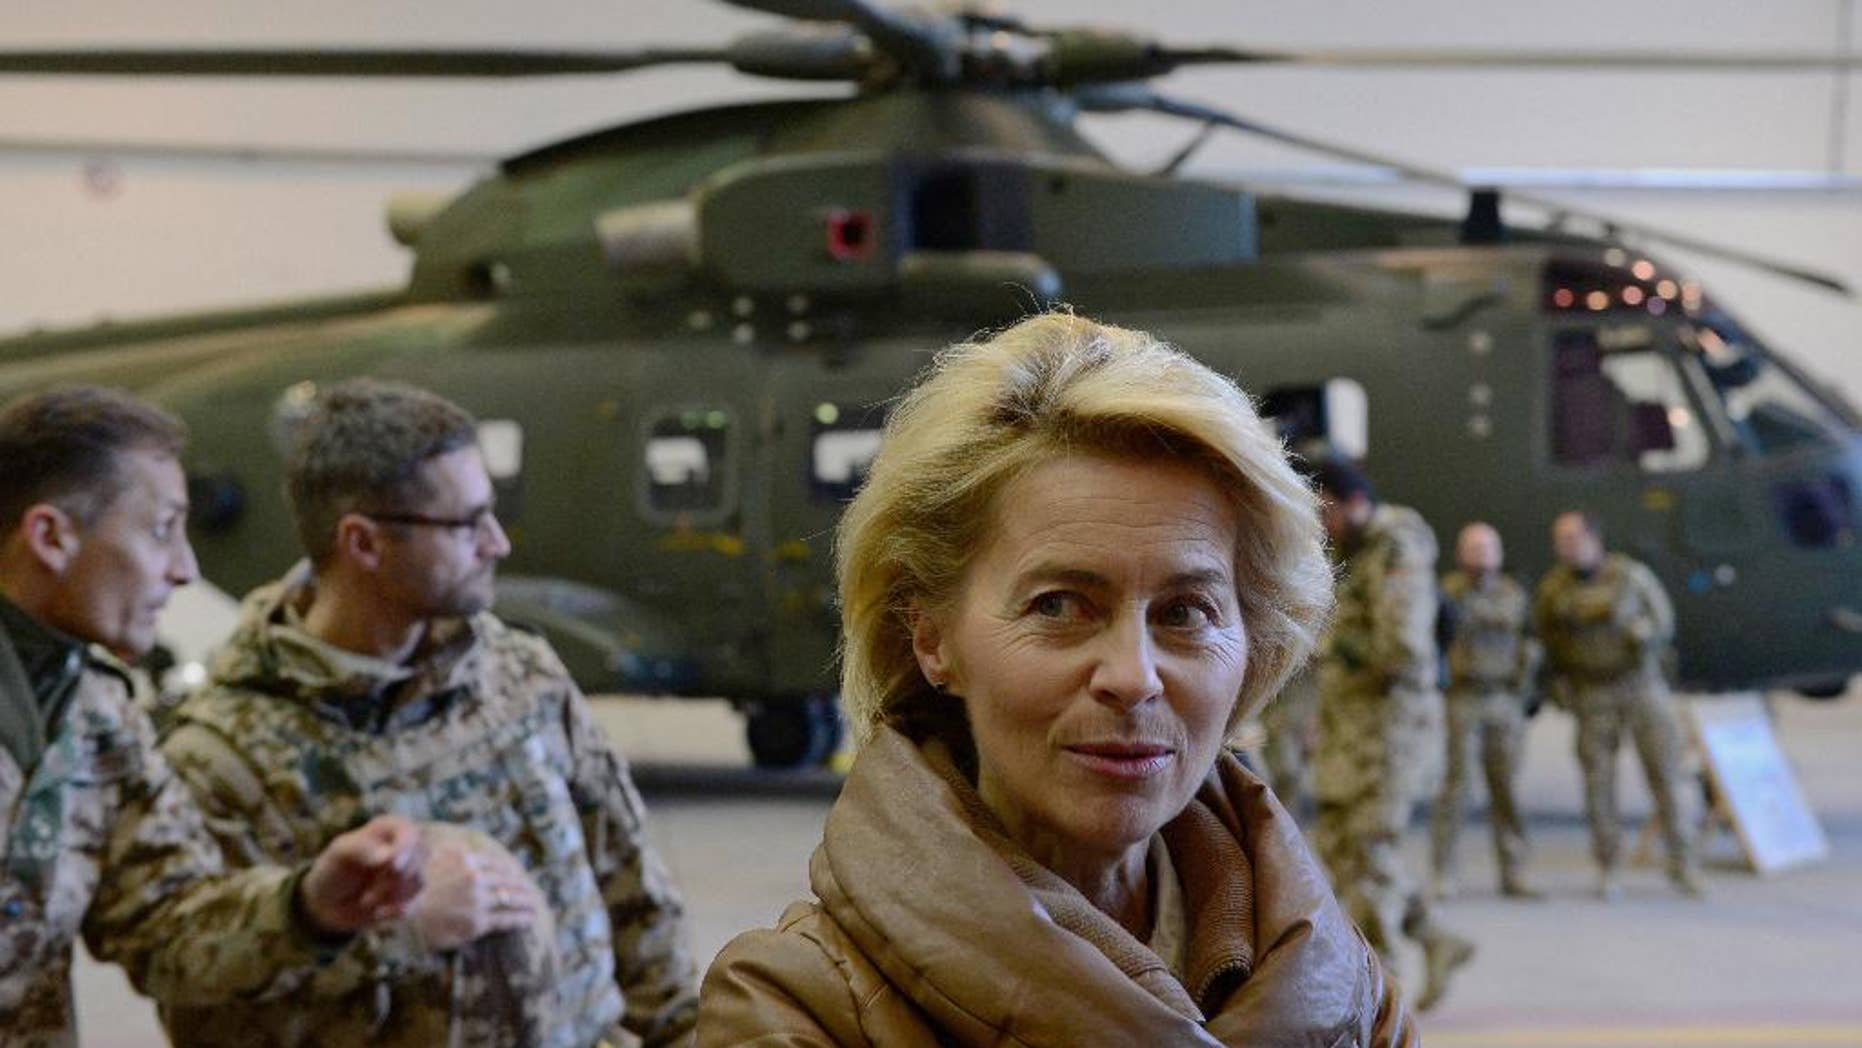 """FILE -  In this Dec. 13, 2014 file picture German Defense Minister Ursula von der Leyen, center, greets German helicopter pilots in a hangar at Camp Marmal in Mazar-i-Sharif, Afghanistan. Germany is affirming its growing role on the world stage in new security guidelines that mark another step away from its caution after World War II. A draft defense policy paper obtained by The Associated Press Tuesday  July 12, 2016 and due to be presented on Wednesday states that """"Germany is a globally highly connected country ... which has a responsibility to actively shape the global order.""""  (John MacDougall, Pool Photo via AP, file)"""